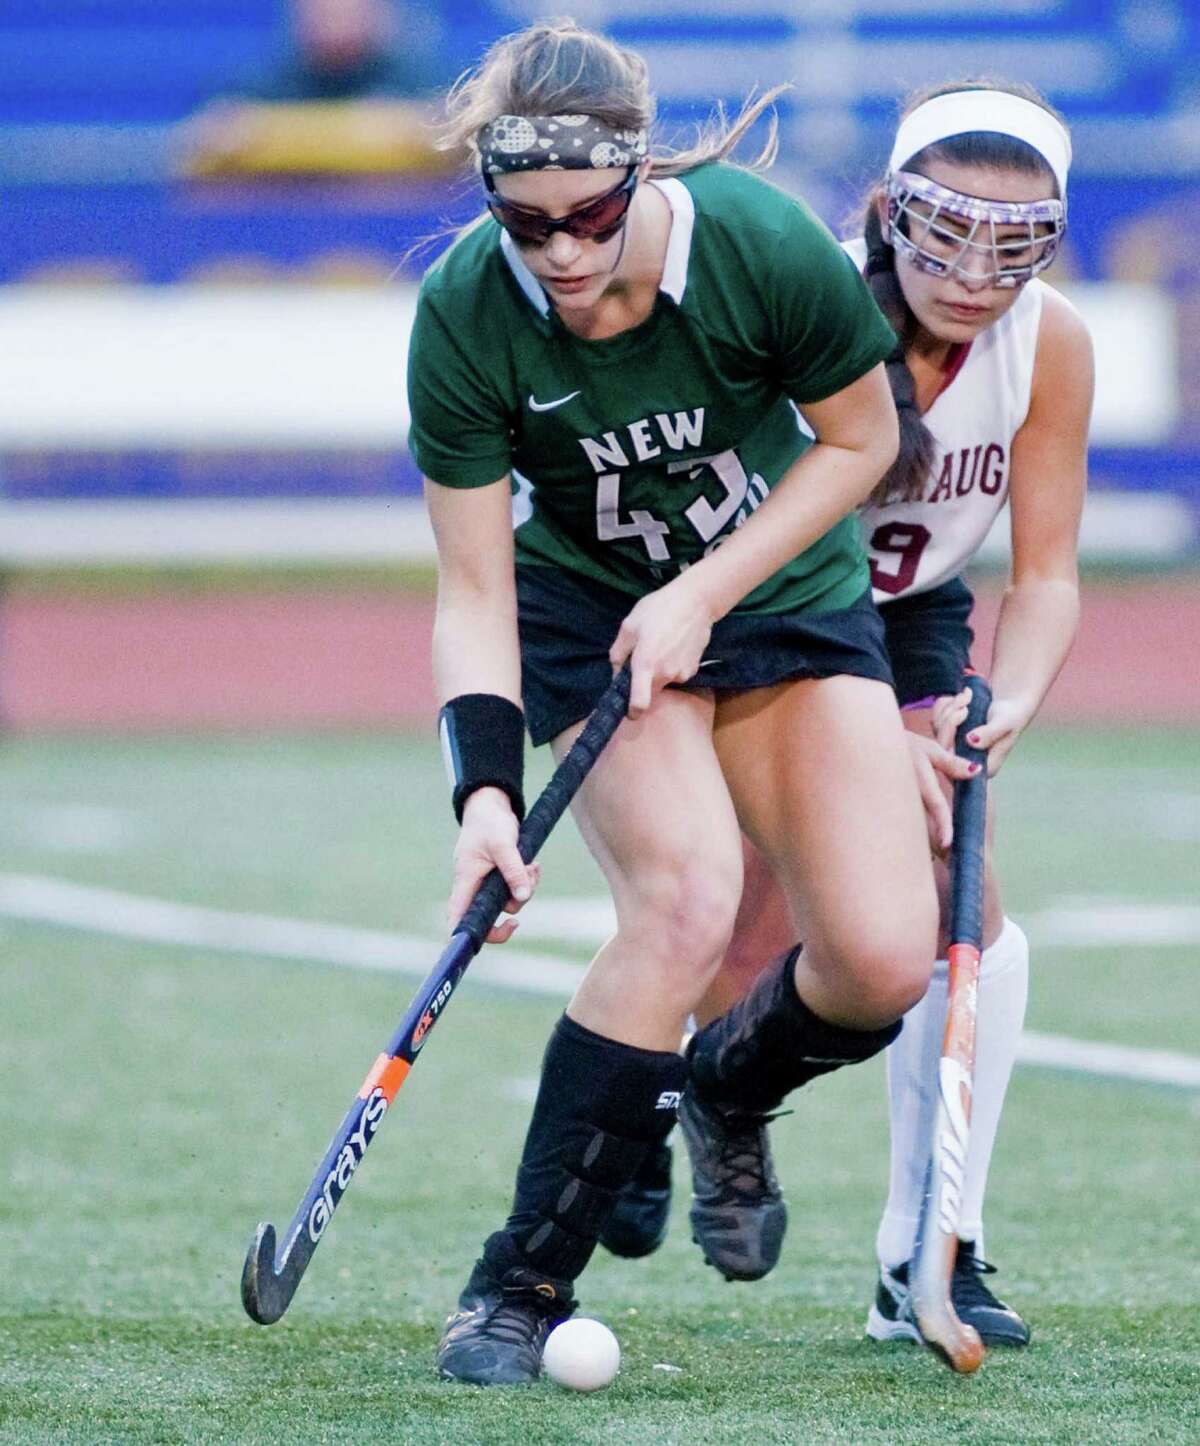 Natalie Capriglione of New Milford High School blocks out Joanna Rizza of Pomperaug High School during the SWC field hockey championship at Brookfield High School. Friday, Oct. 31, 2014